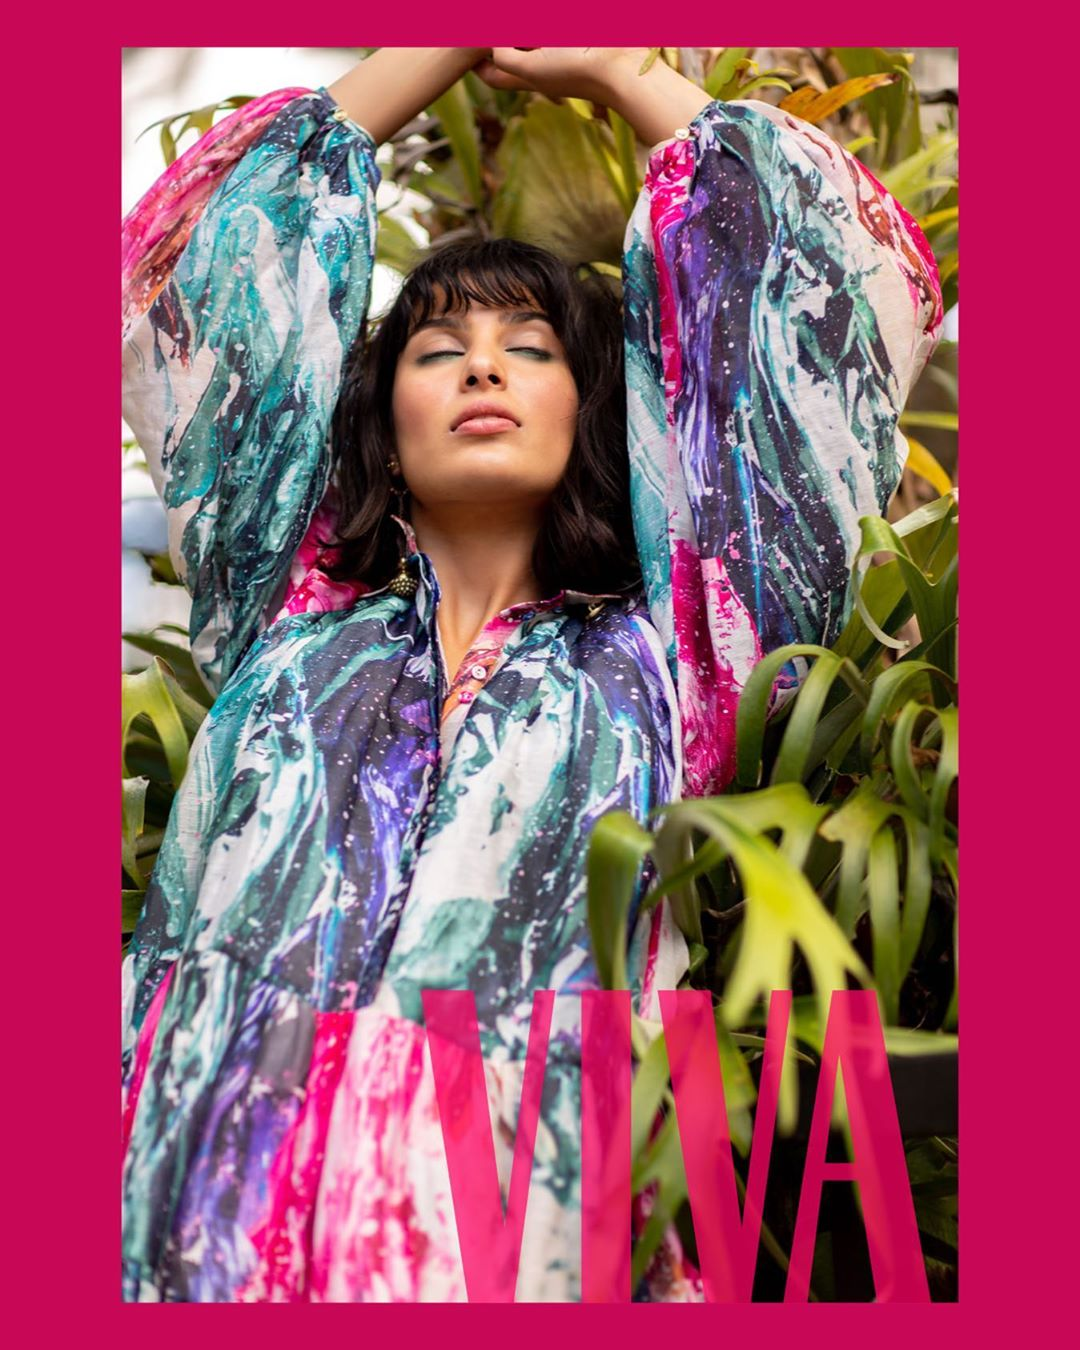 Ria photographed for Viva Magazine by Babiche Martens in Aje Fashion Dan Ahwa